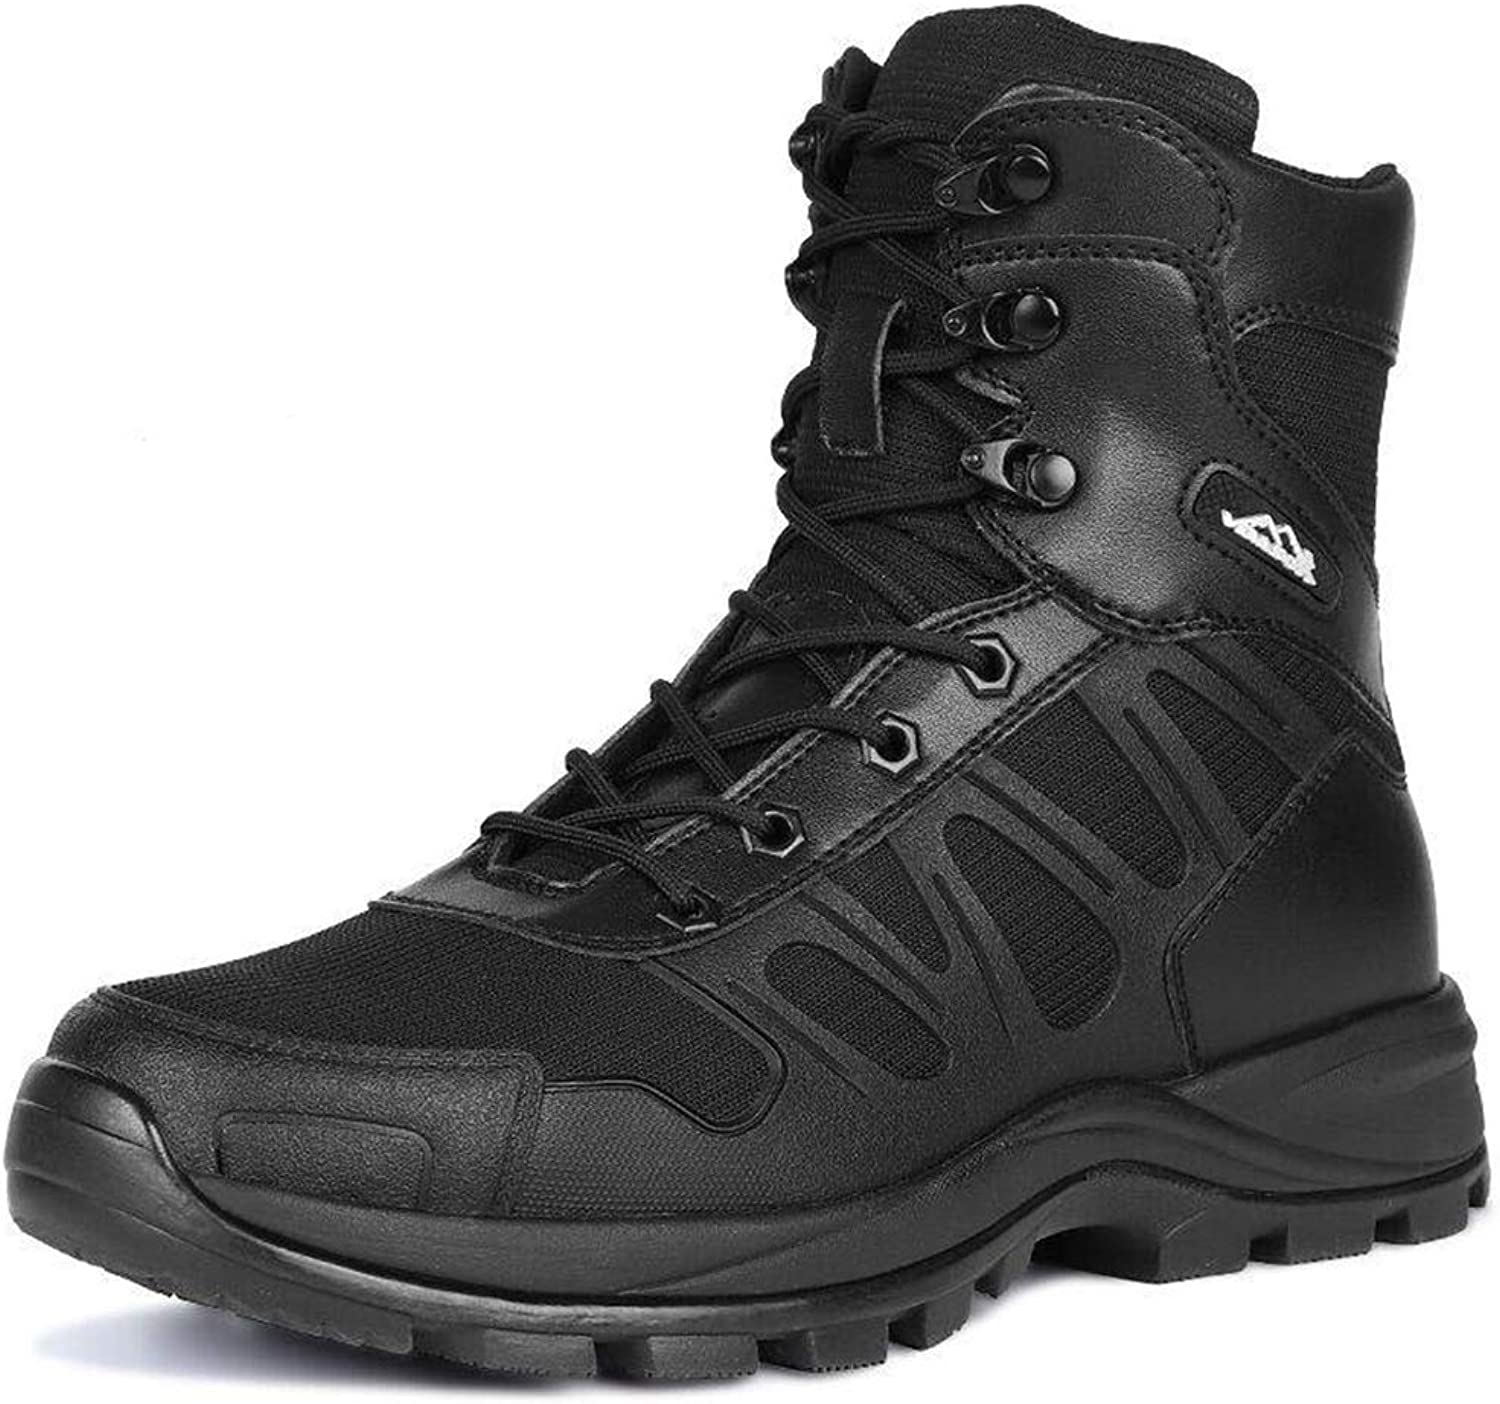 Combat Boots Tactical Boots Military Boot Breathable Desert Boots Combat Boots Special Forces Airborne Boots